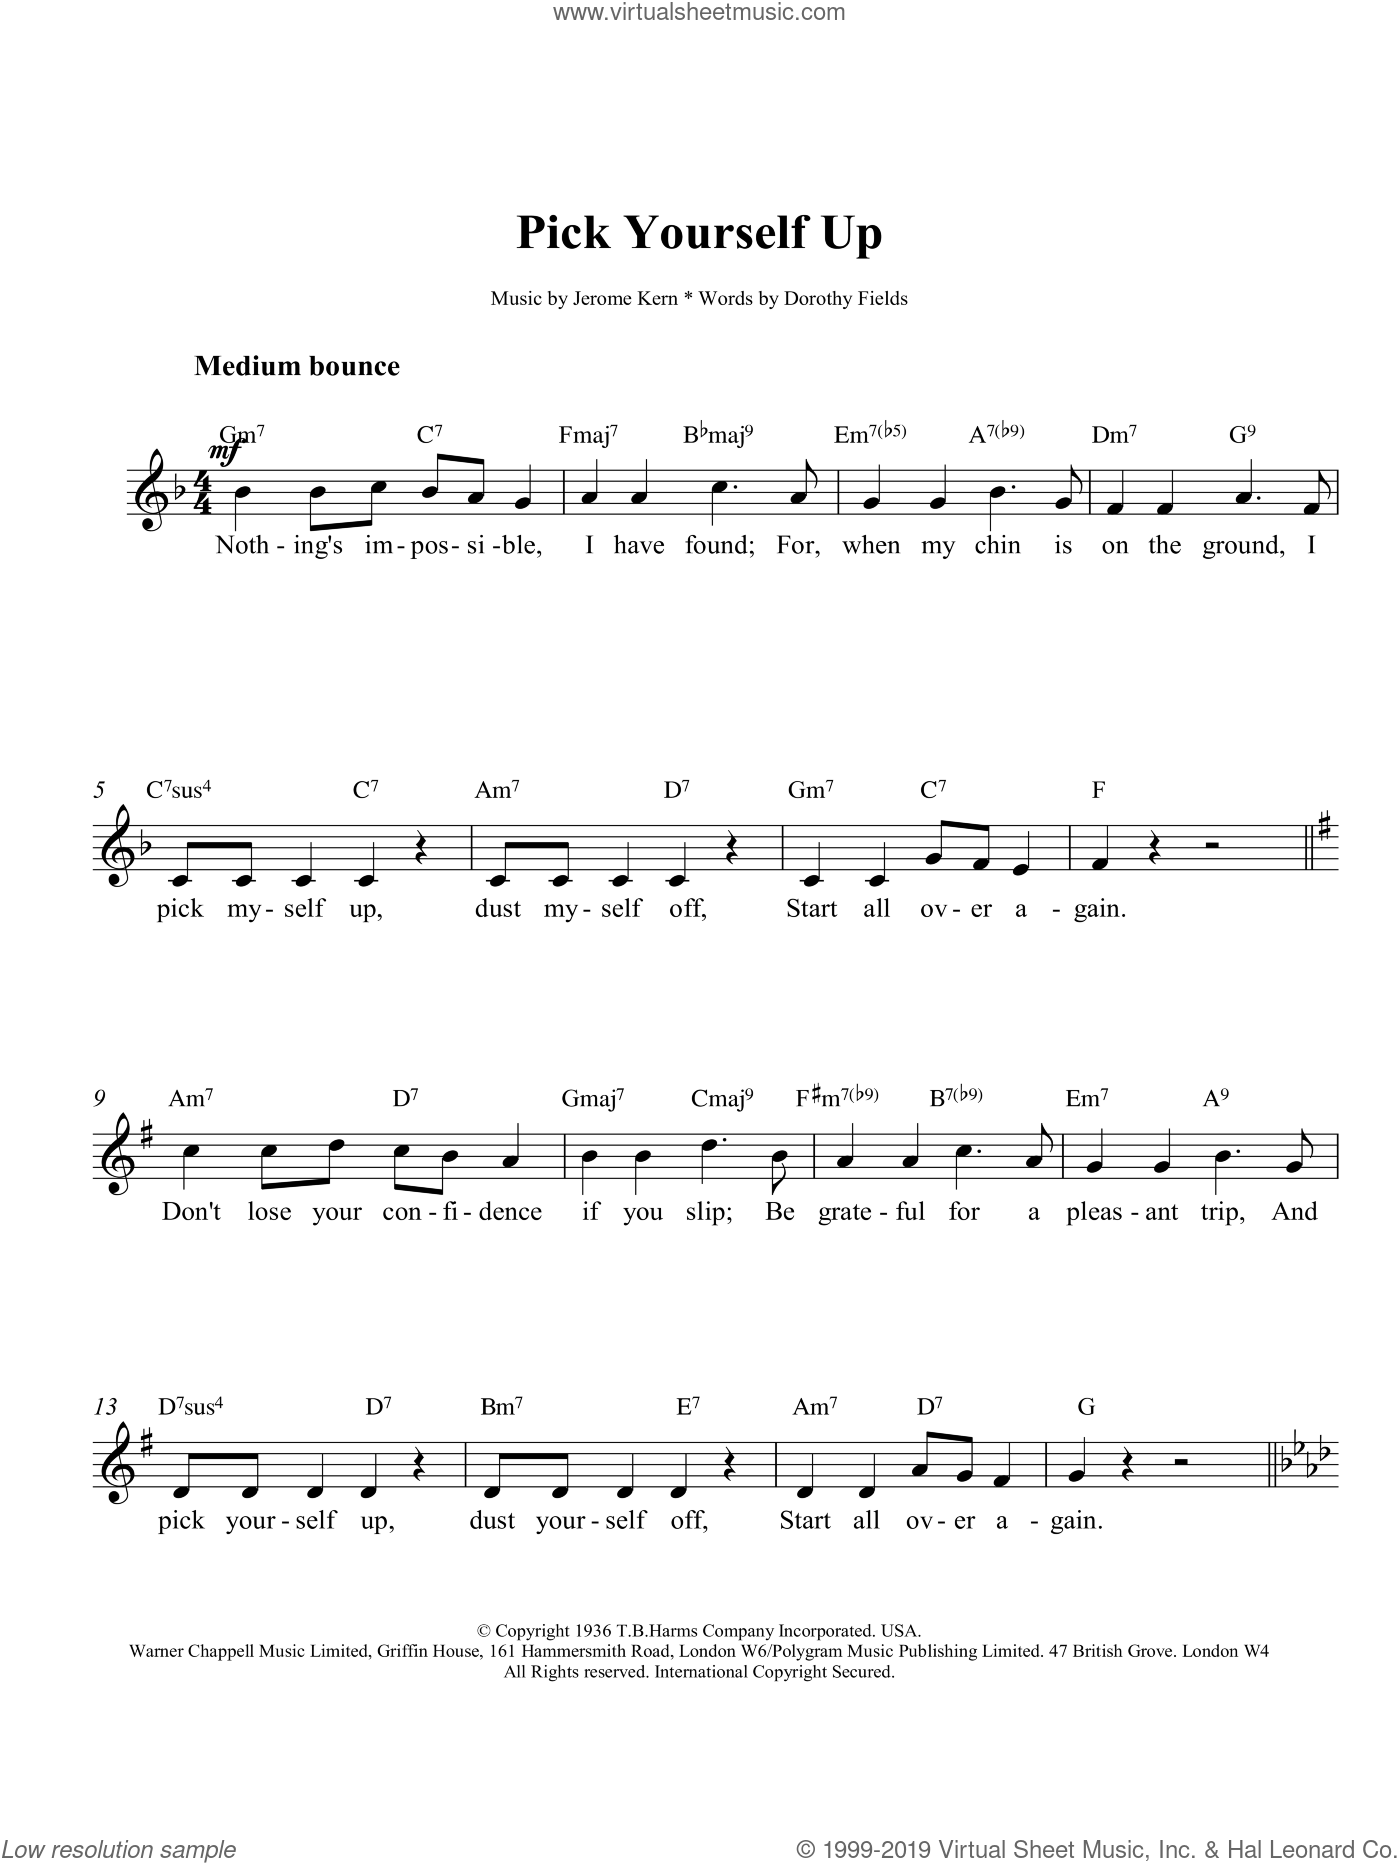 Pick Yourself Up sheet music for voice and other instruments (fake book) by Jerome Kern and Dorothy Fields, intermediate skill level